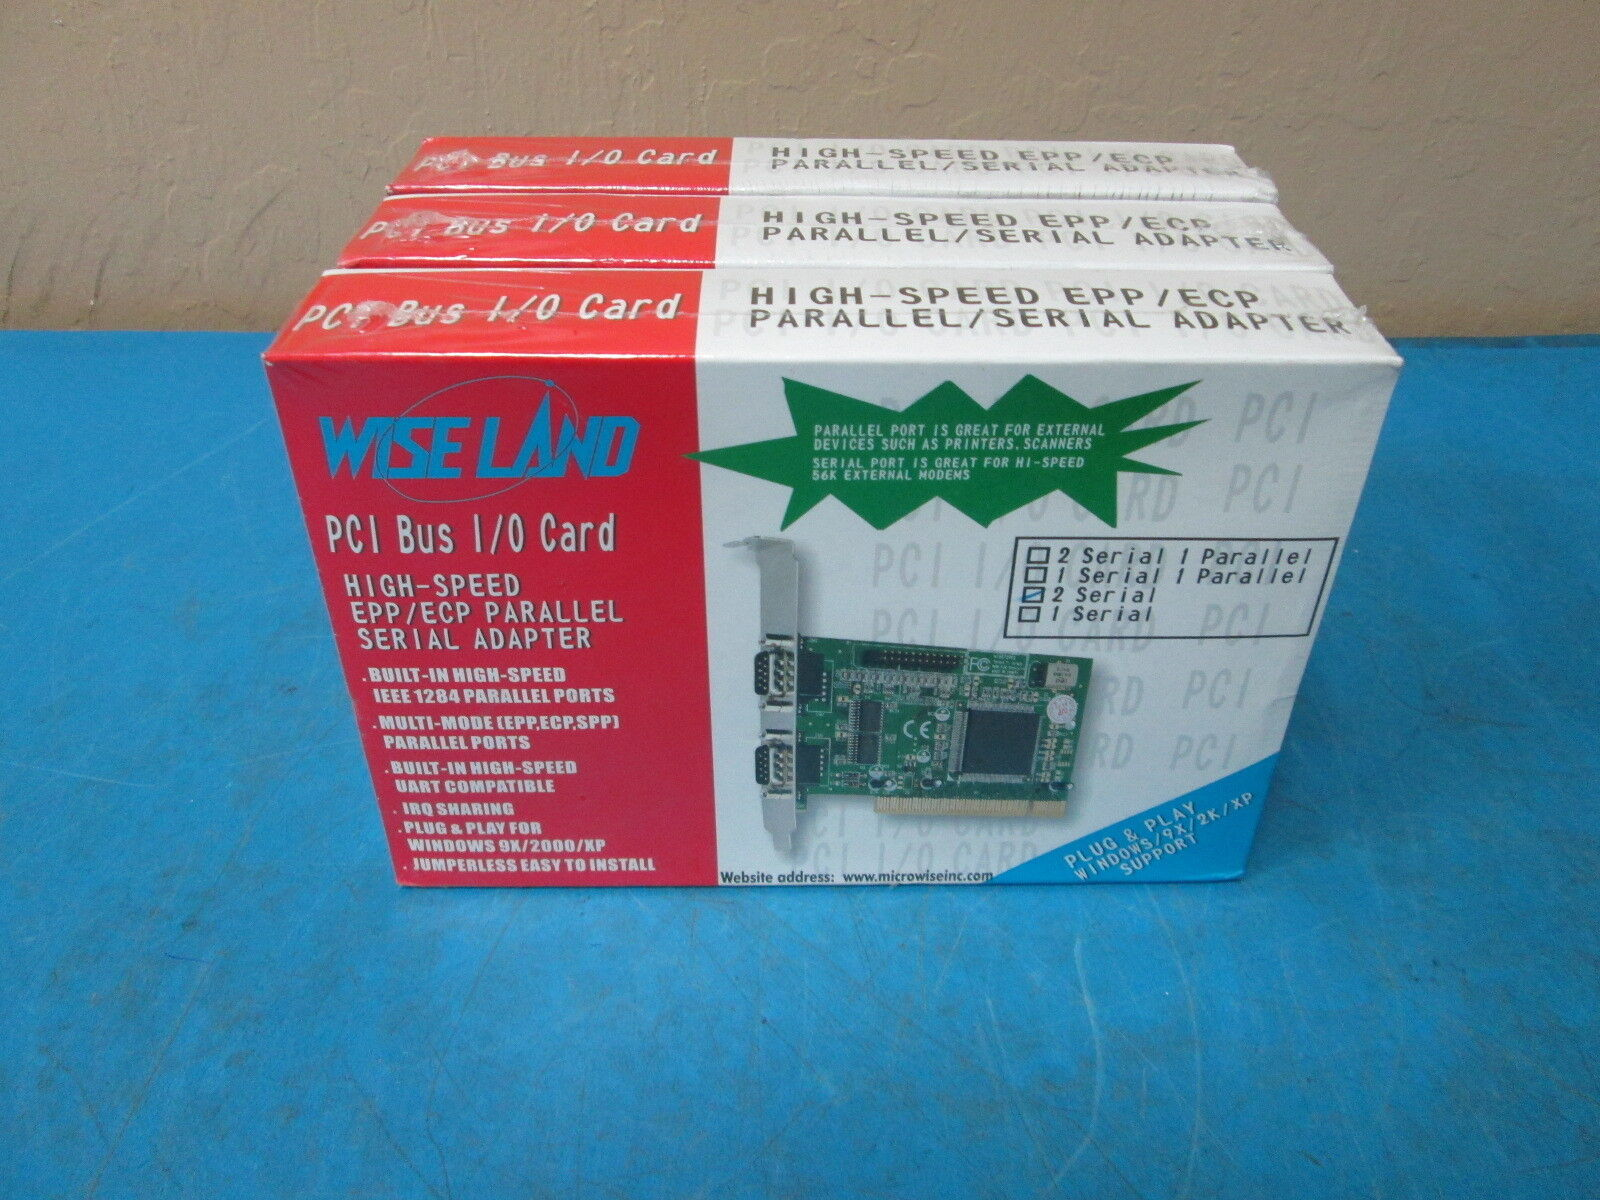 LOT OF 3 Micro Wise PCI Bus I/O Card High-Speed EPP/ECP Parallel/Serial Adapter